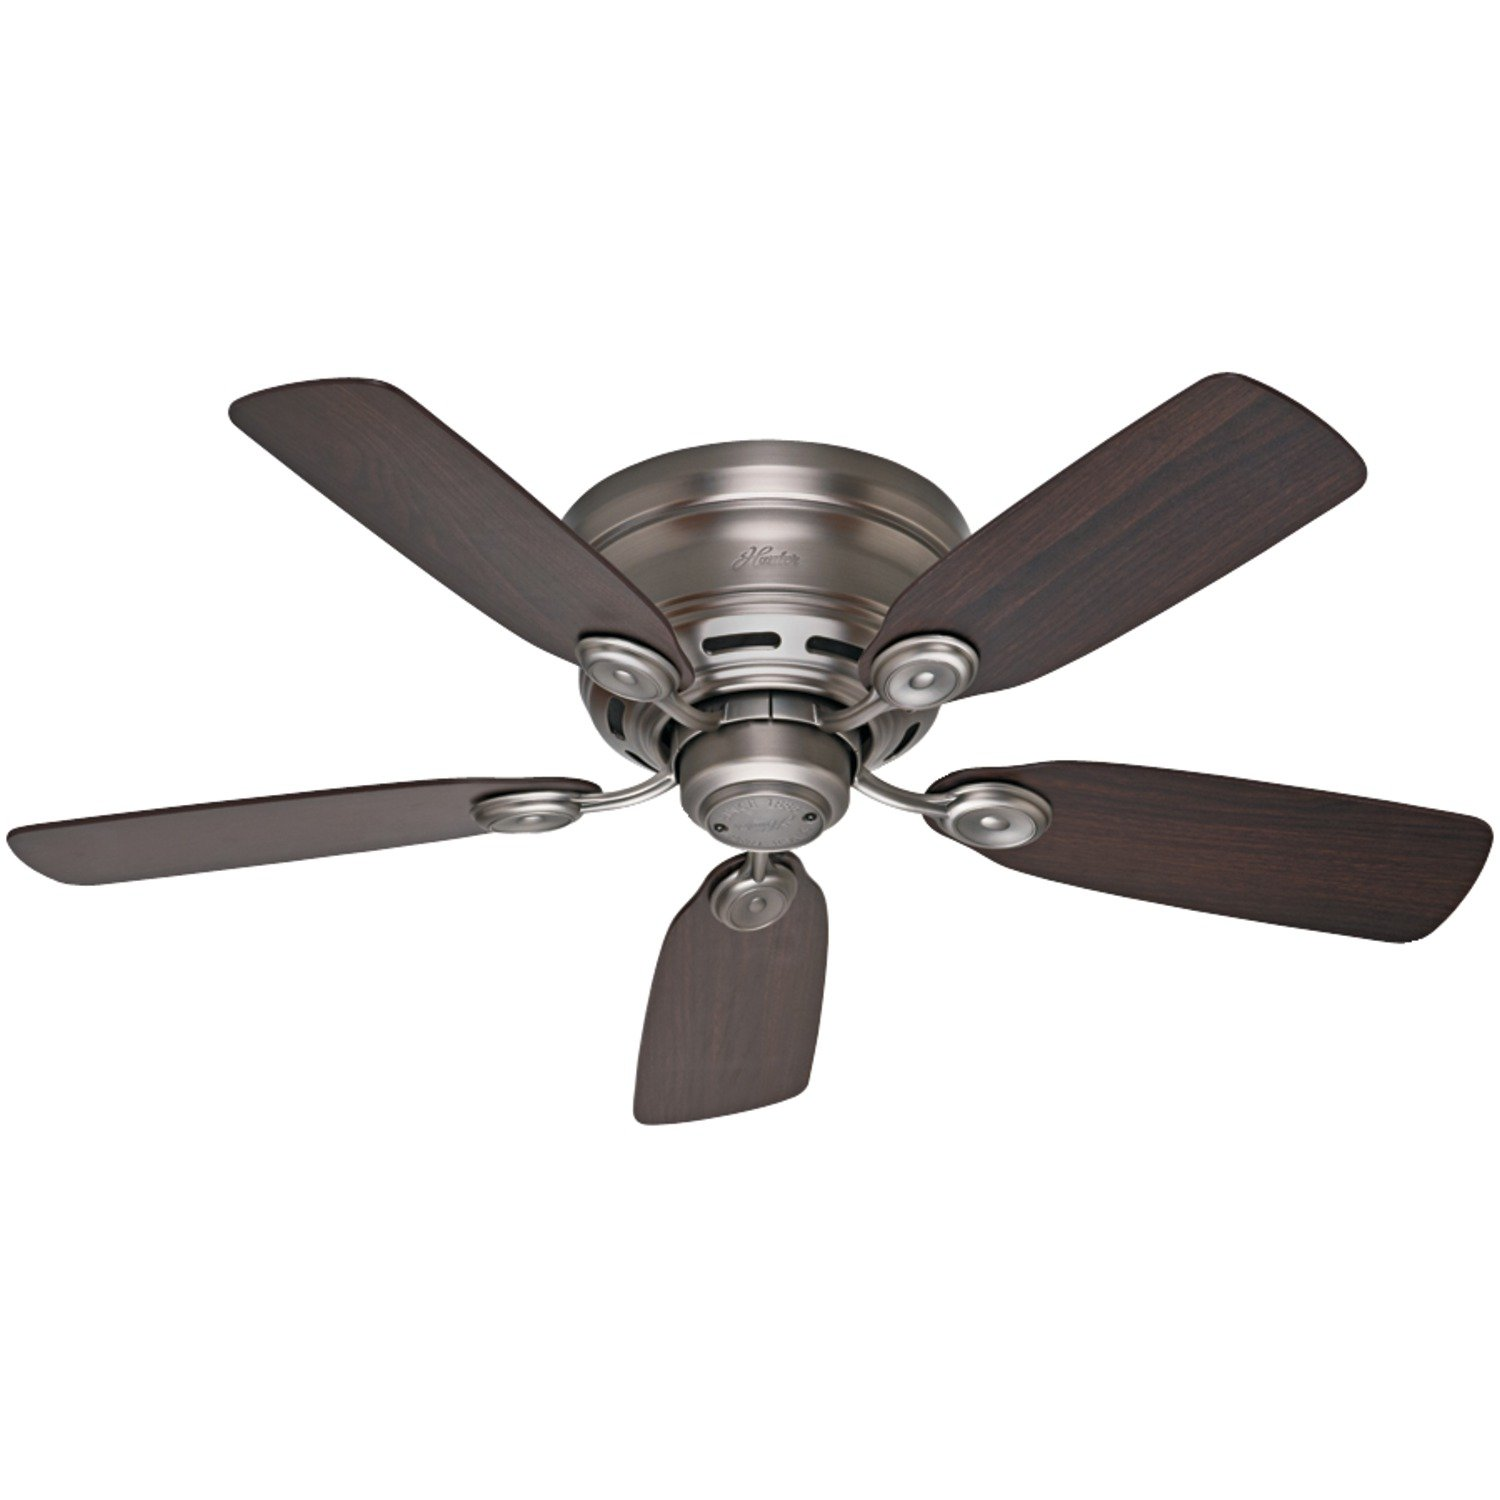 fans hunter white studio ceiling series dp oak with amazon bleached inch fan blades com